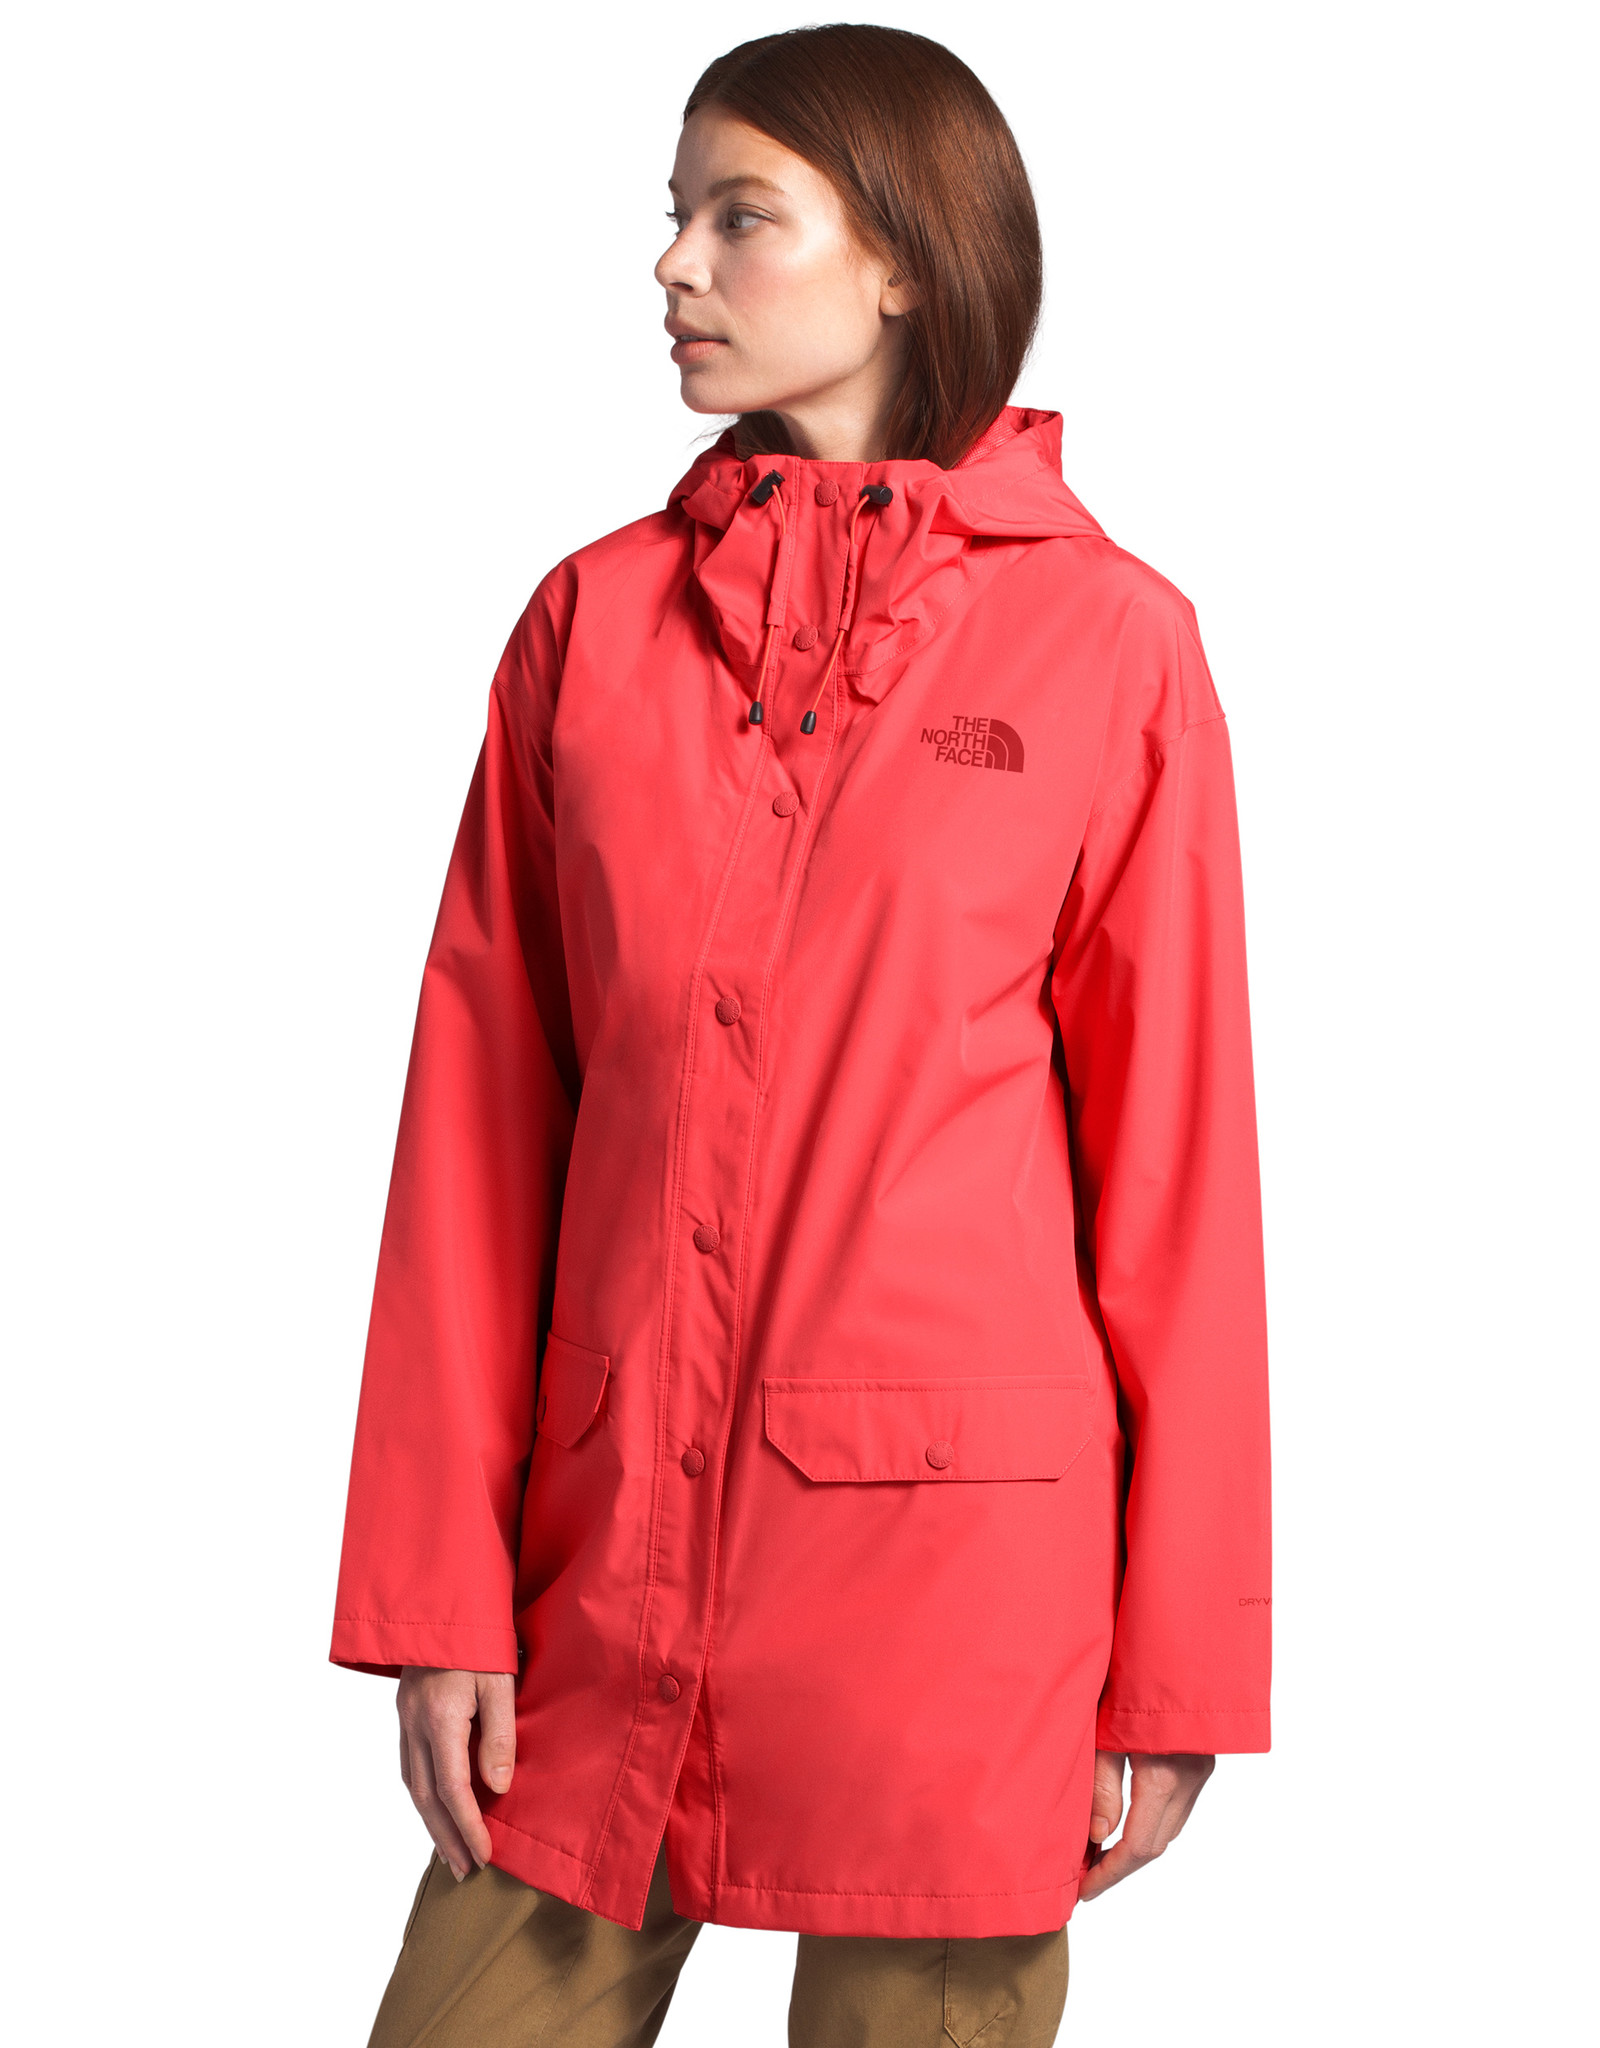 The North Face The North Face Women's Woodmont Rain Jacket - S2020